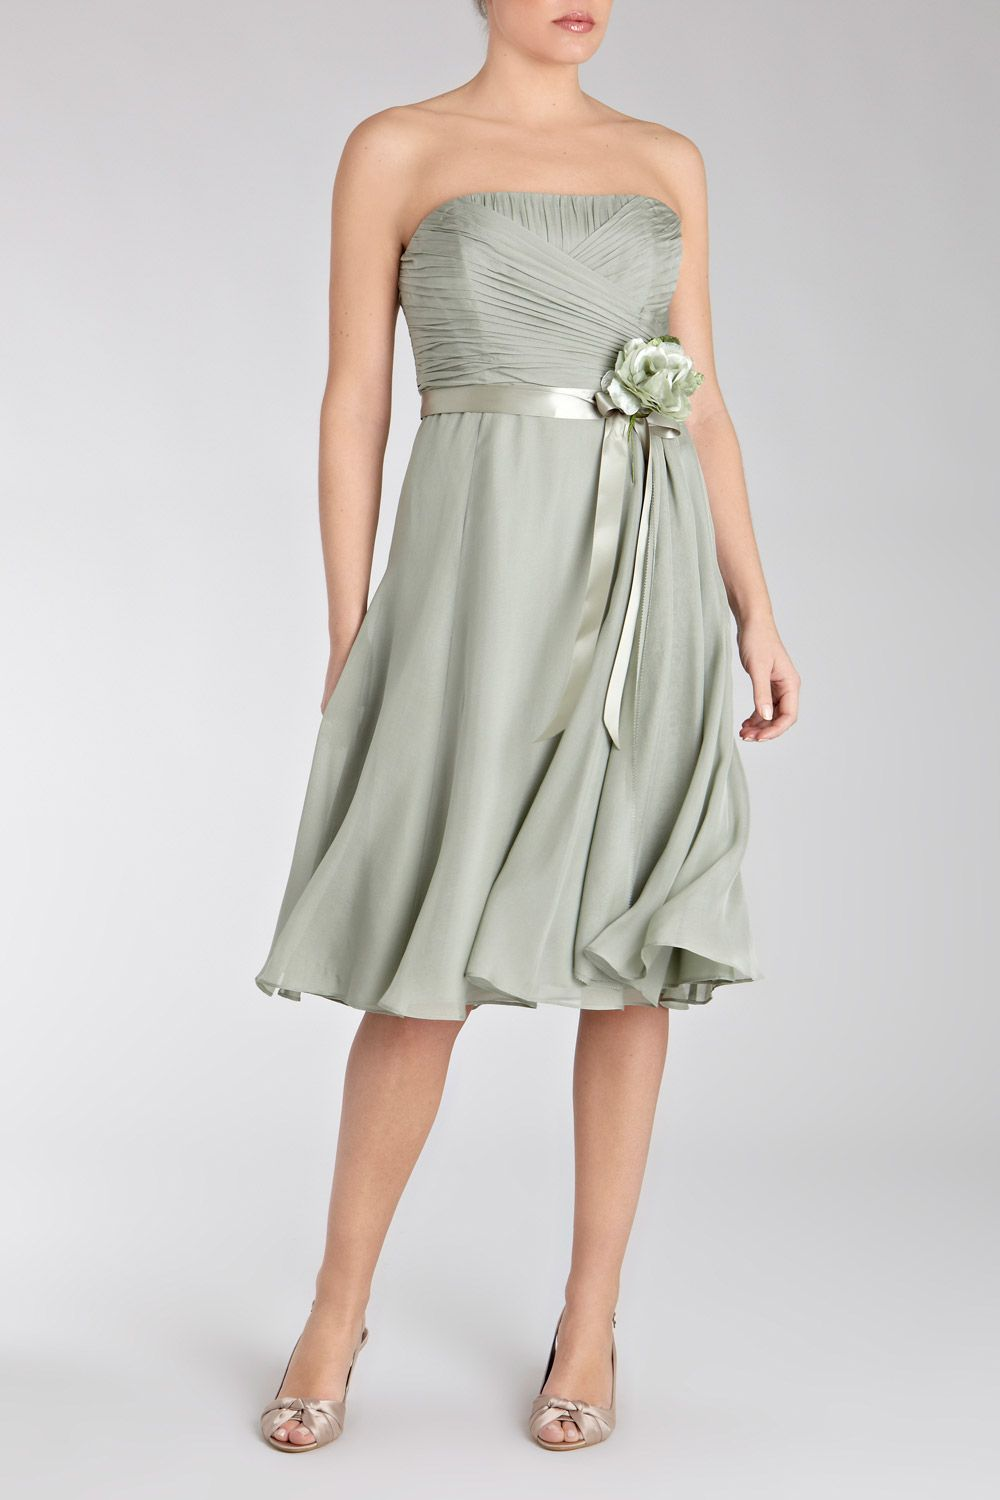 Allure bridesmaid dress from Coast. £145 or maxi dress for £180 ...